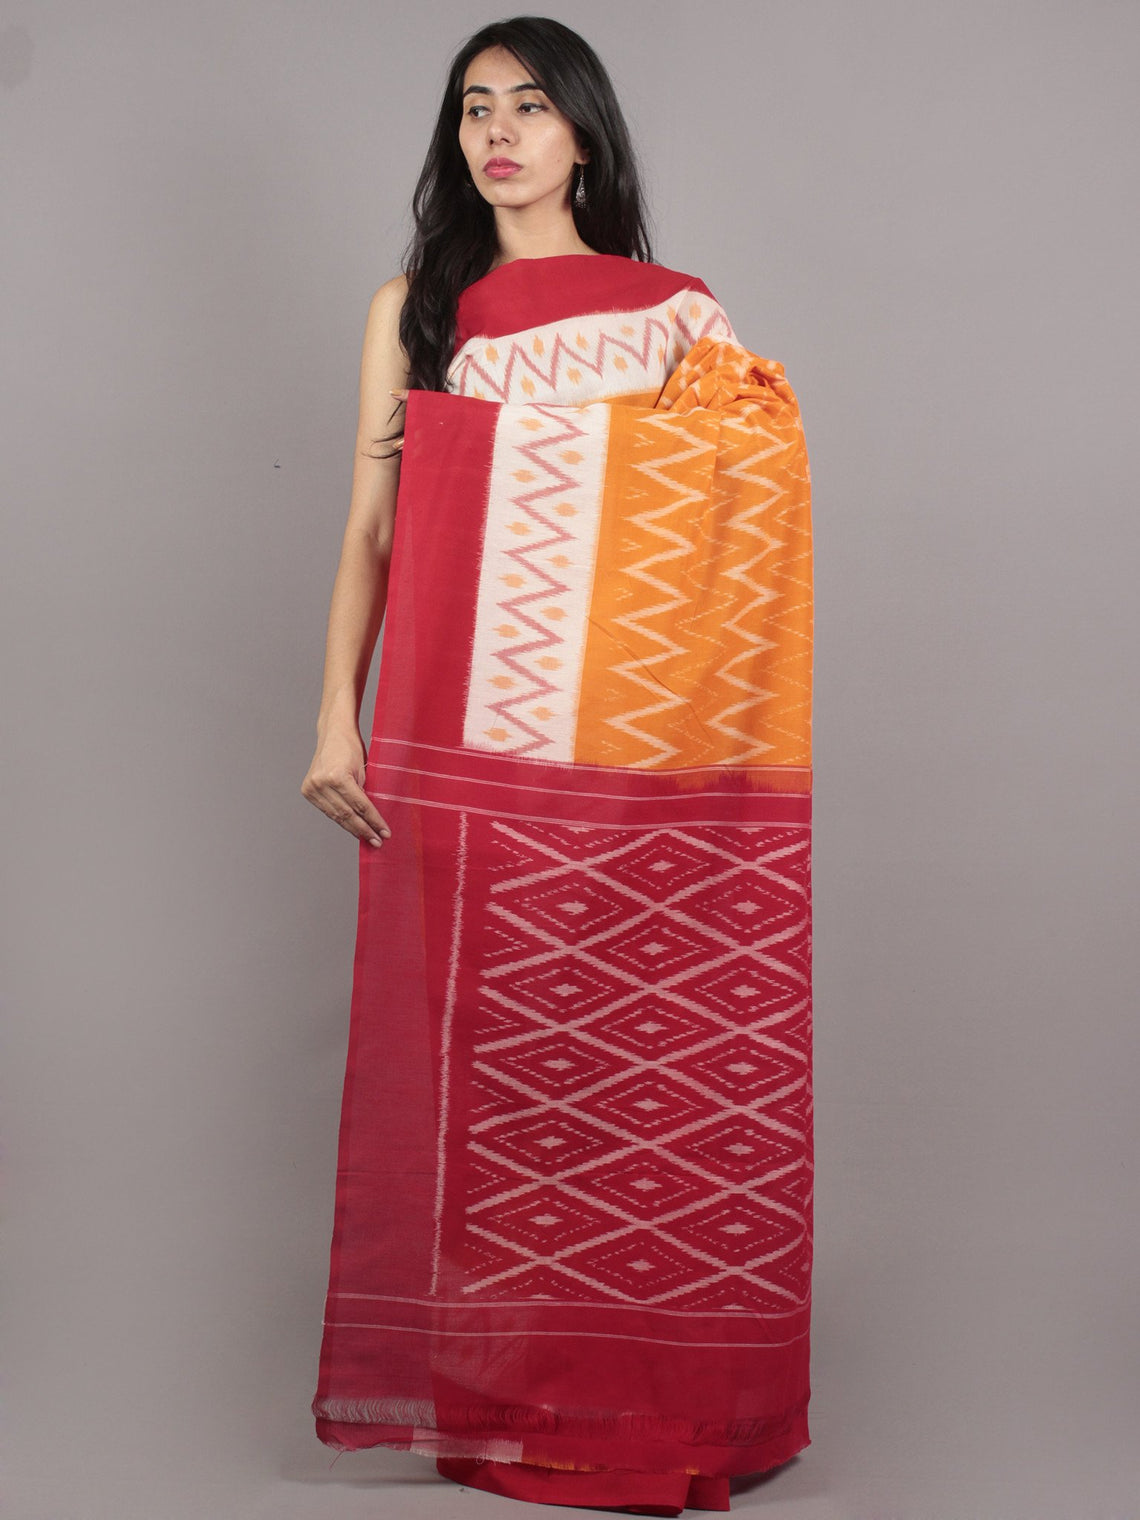 Orange Ivory Red Ikat Handwoven Pochampally Mercerized Cotton Saree - S031701644